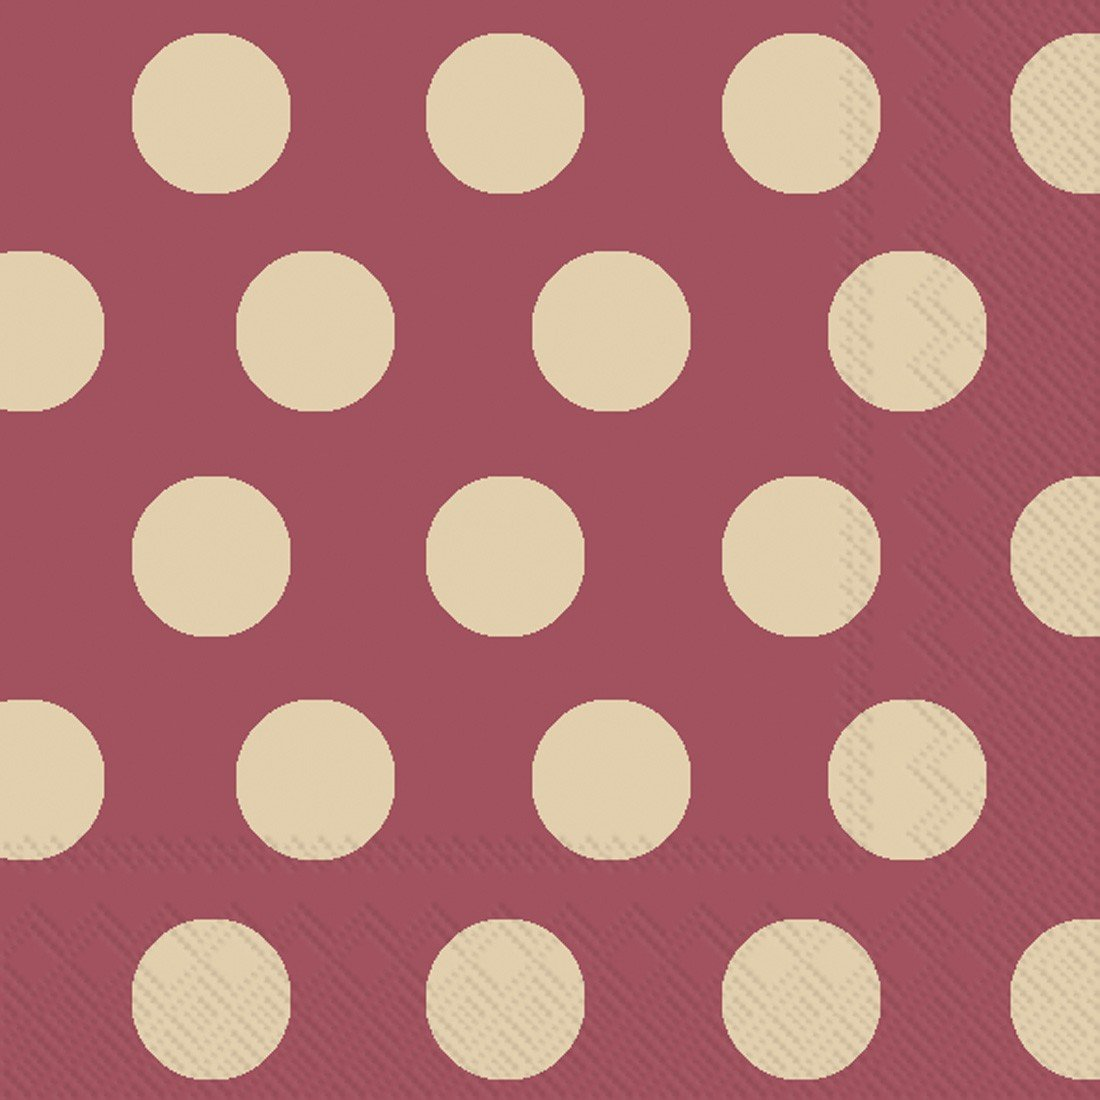 Ideal Home Range 20-Count Big Dots 3-Ply Paper Lunch Napkins, Maroon and Gold